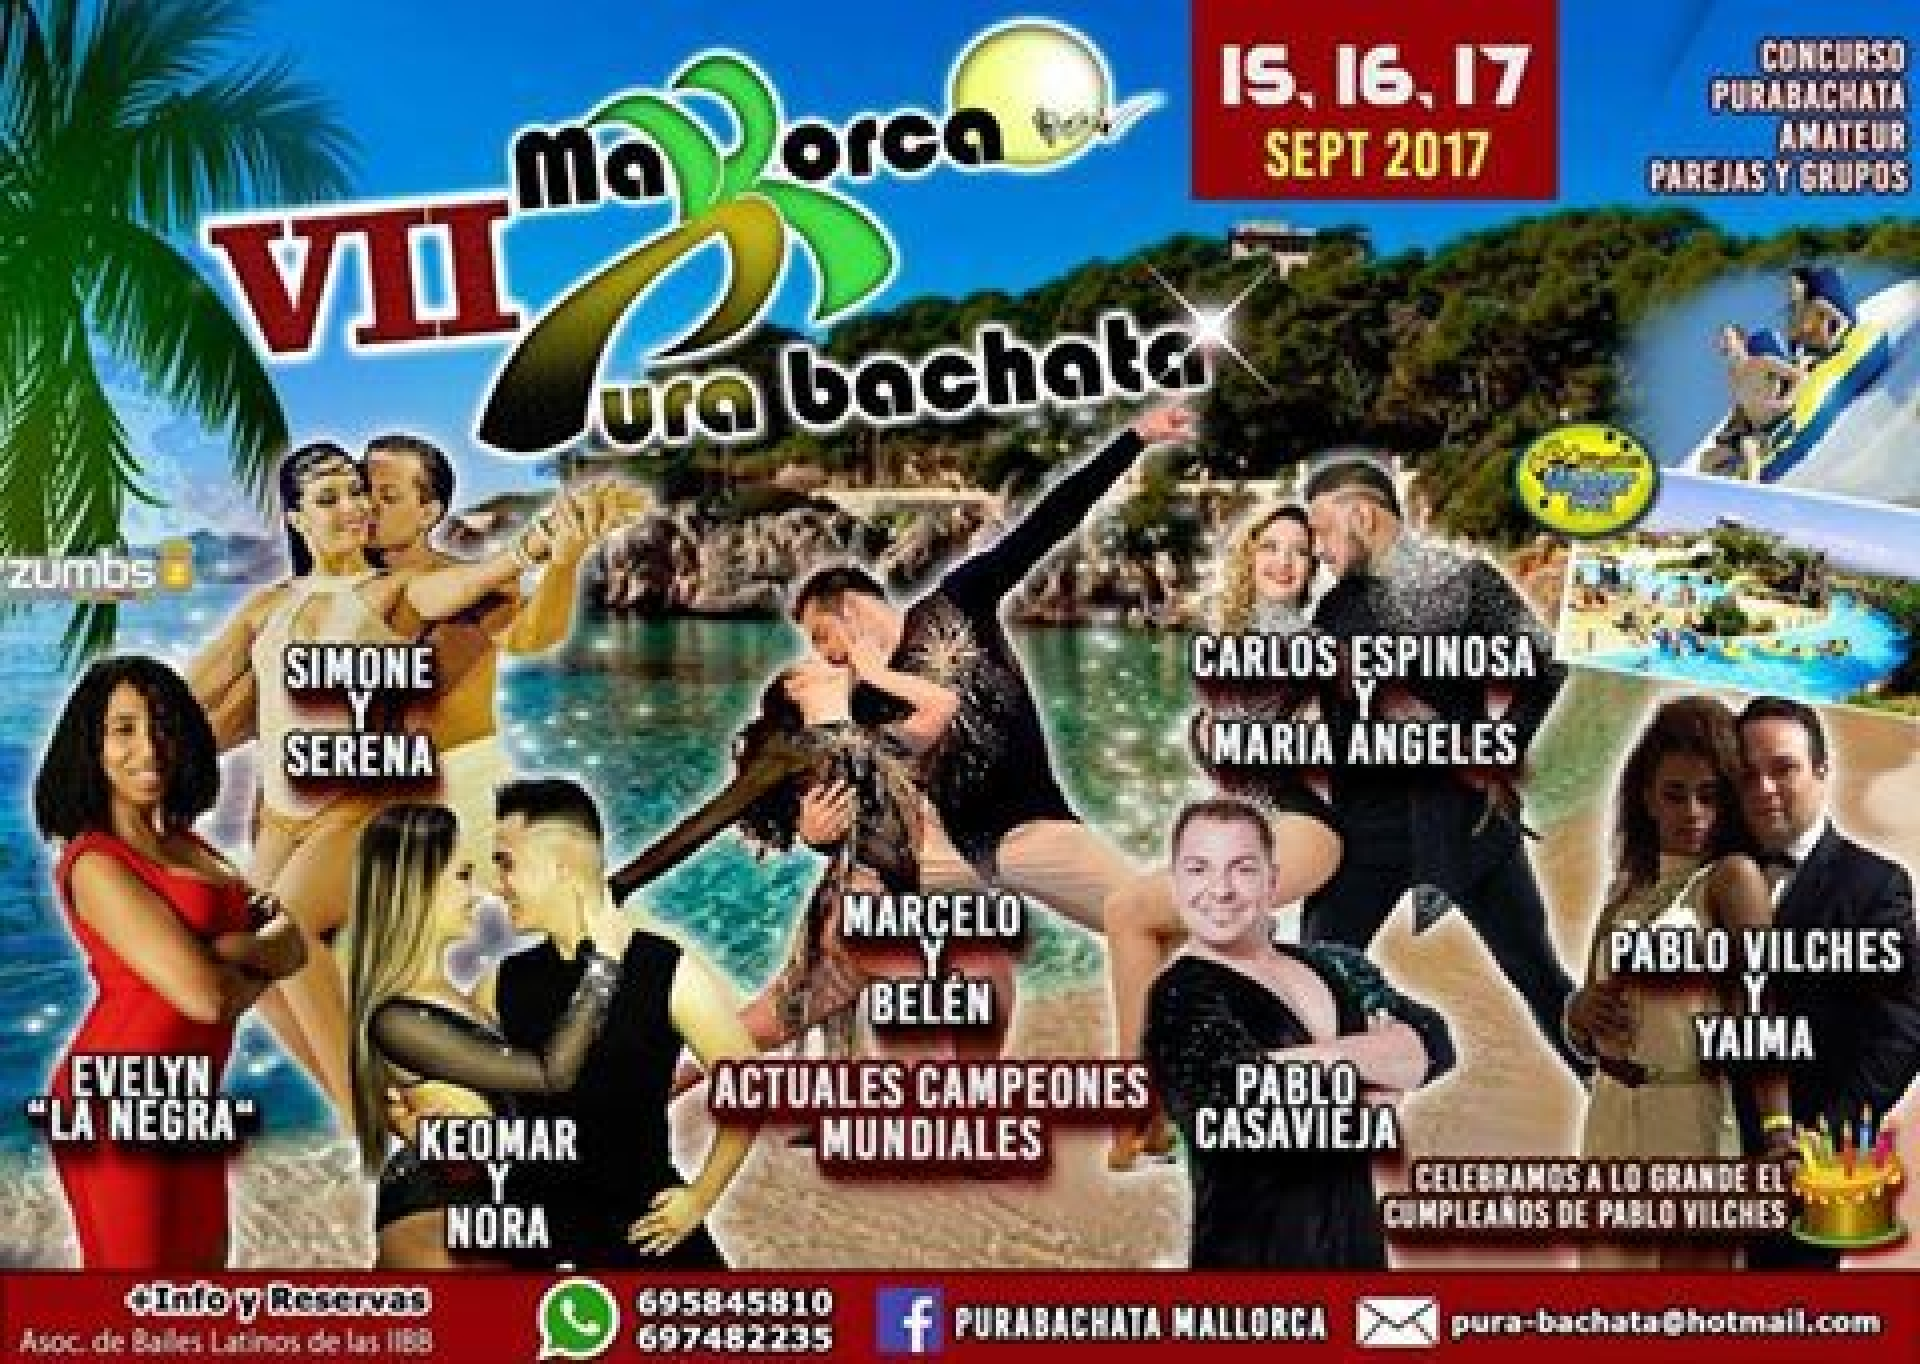 Purabachata mallorca international congress 2017 go dance - Eventos mallorca 2017 ...